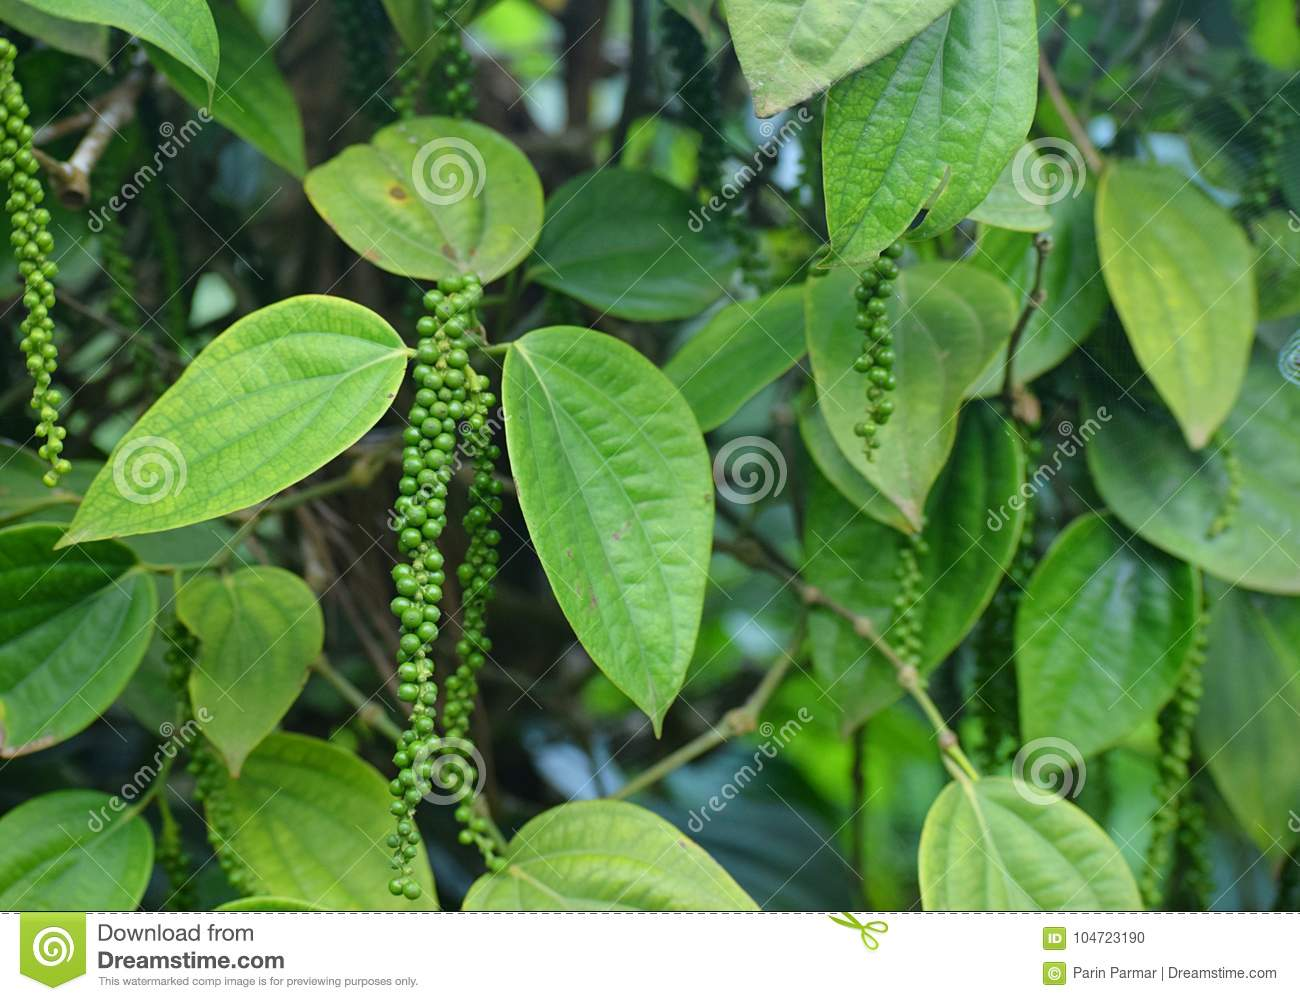 Black Pepper Vine - Piper Nigrum - Green drupes with Leaves in Kerala, India